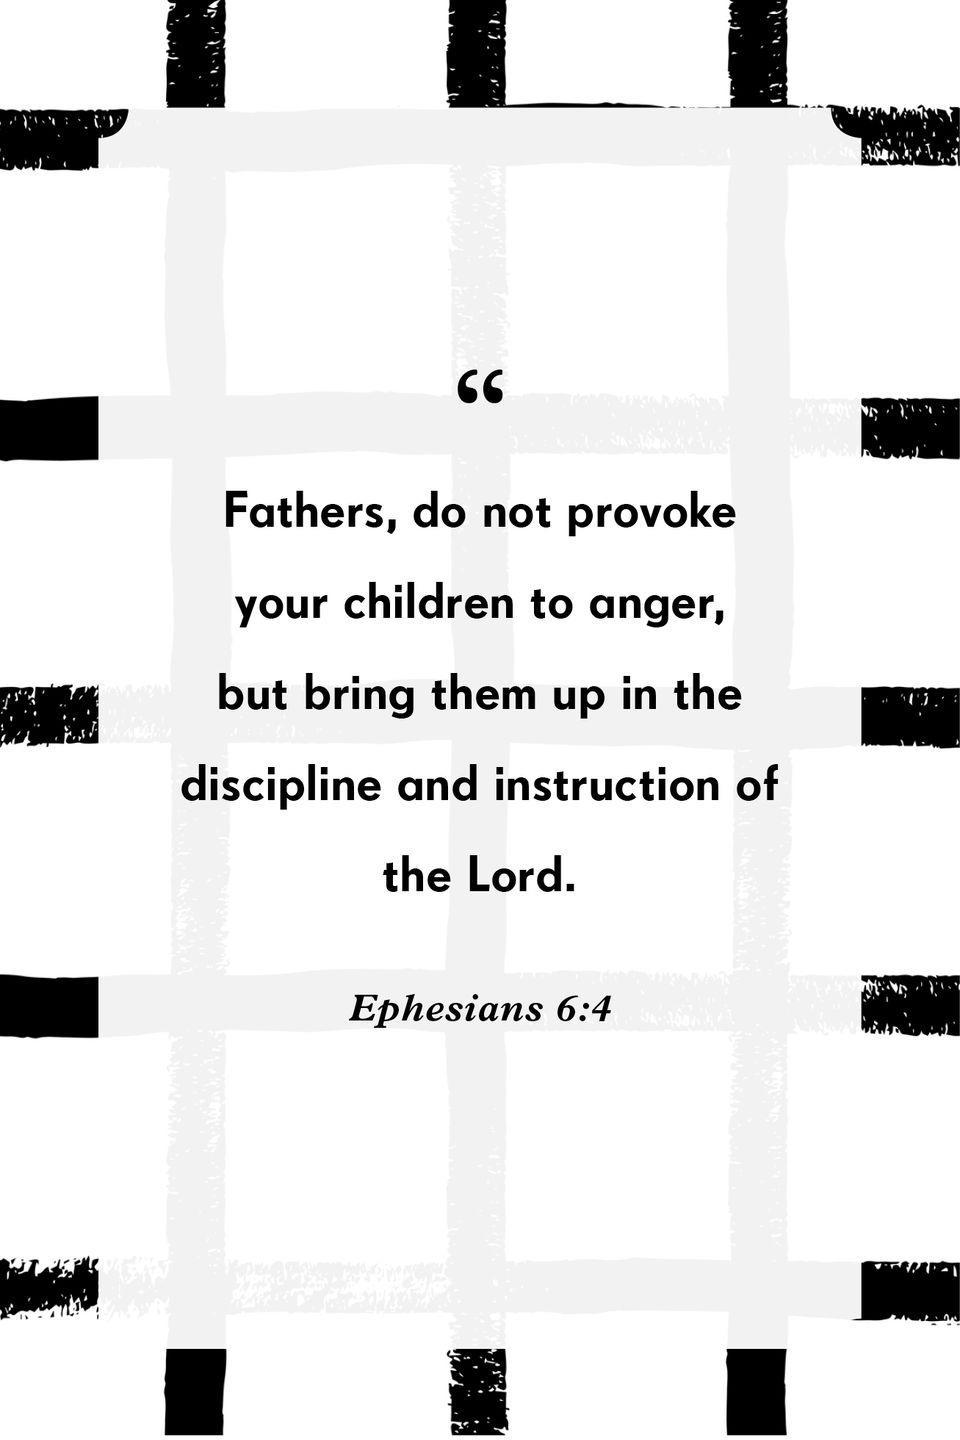 """<p>""""Fathers, do not provoke your children to anger, but bring them up in the discipline and instruction of the Lord.""""</p>"""